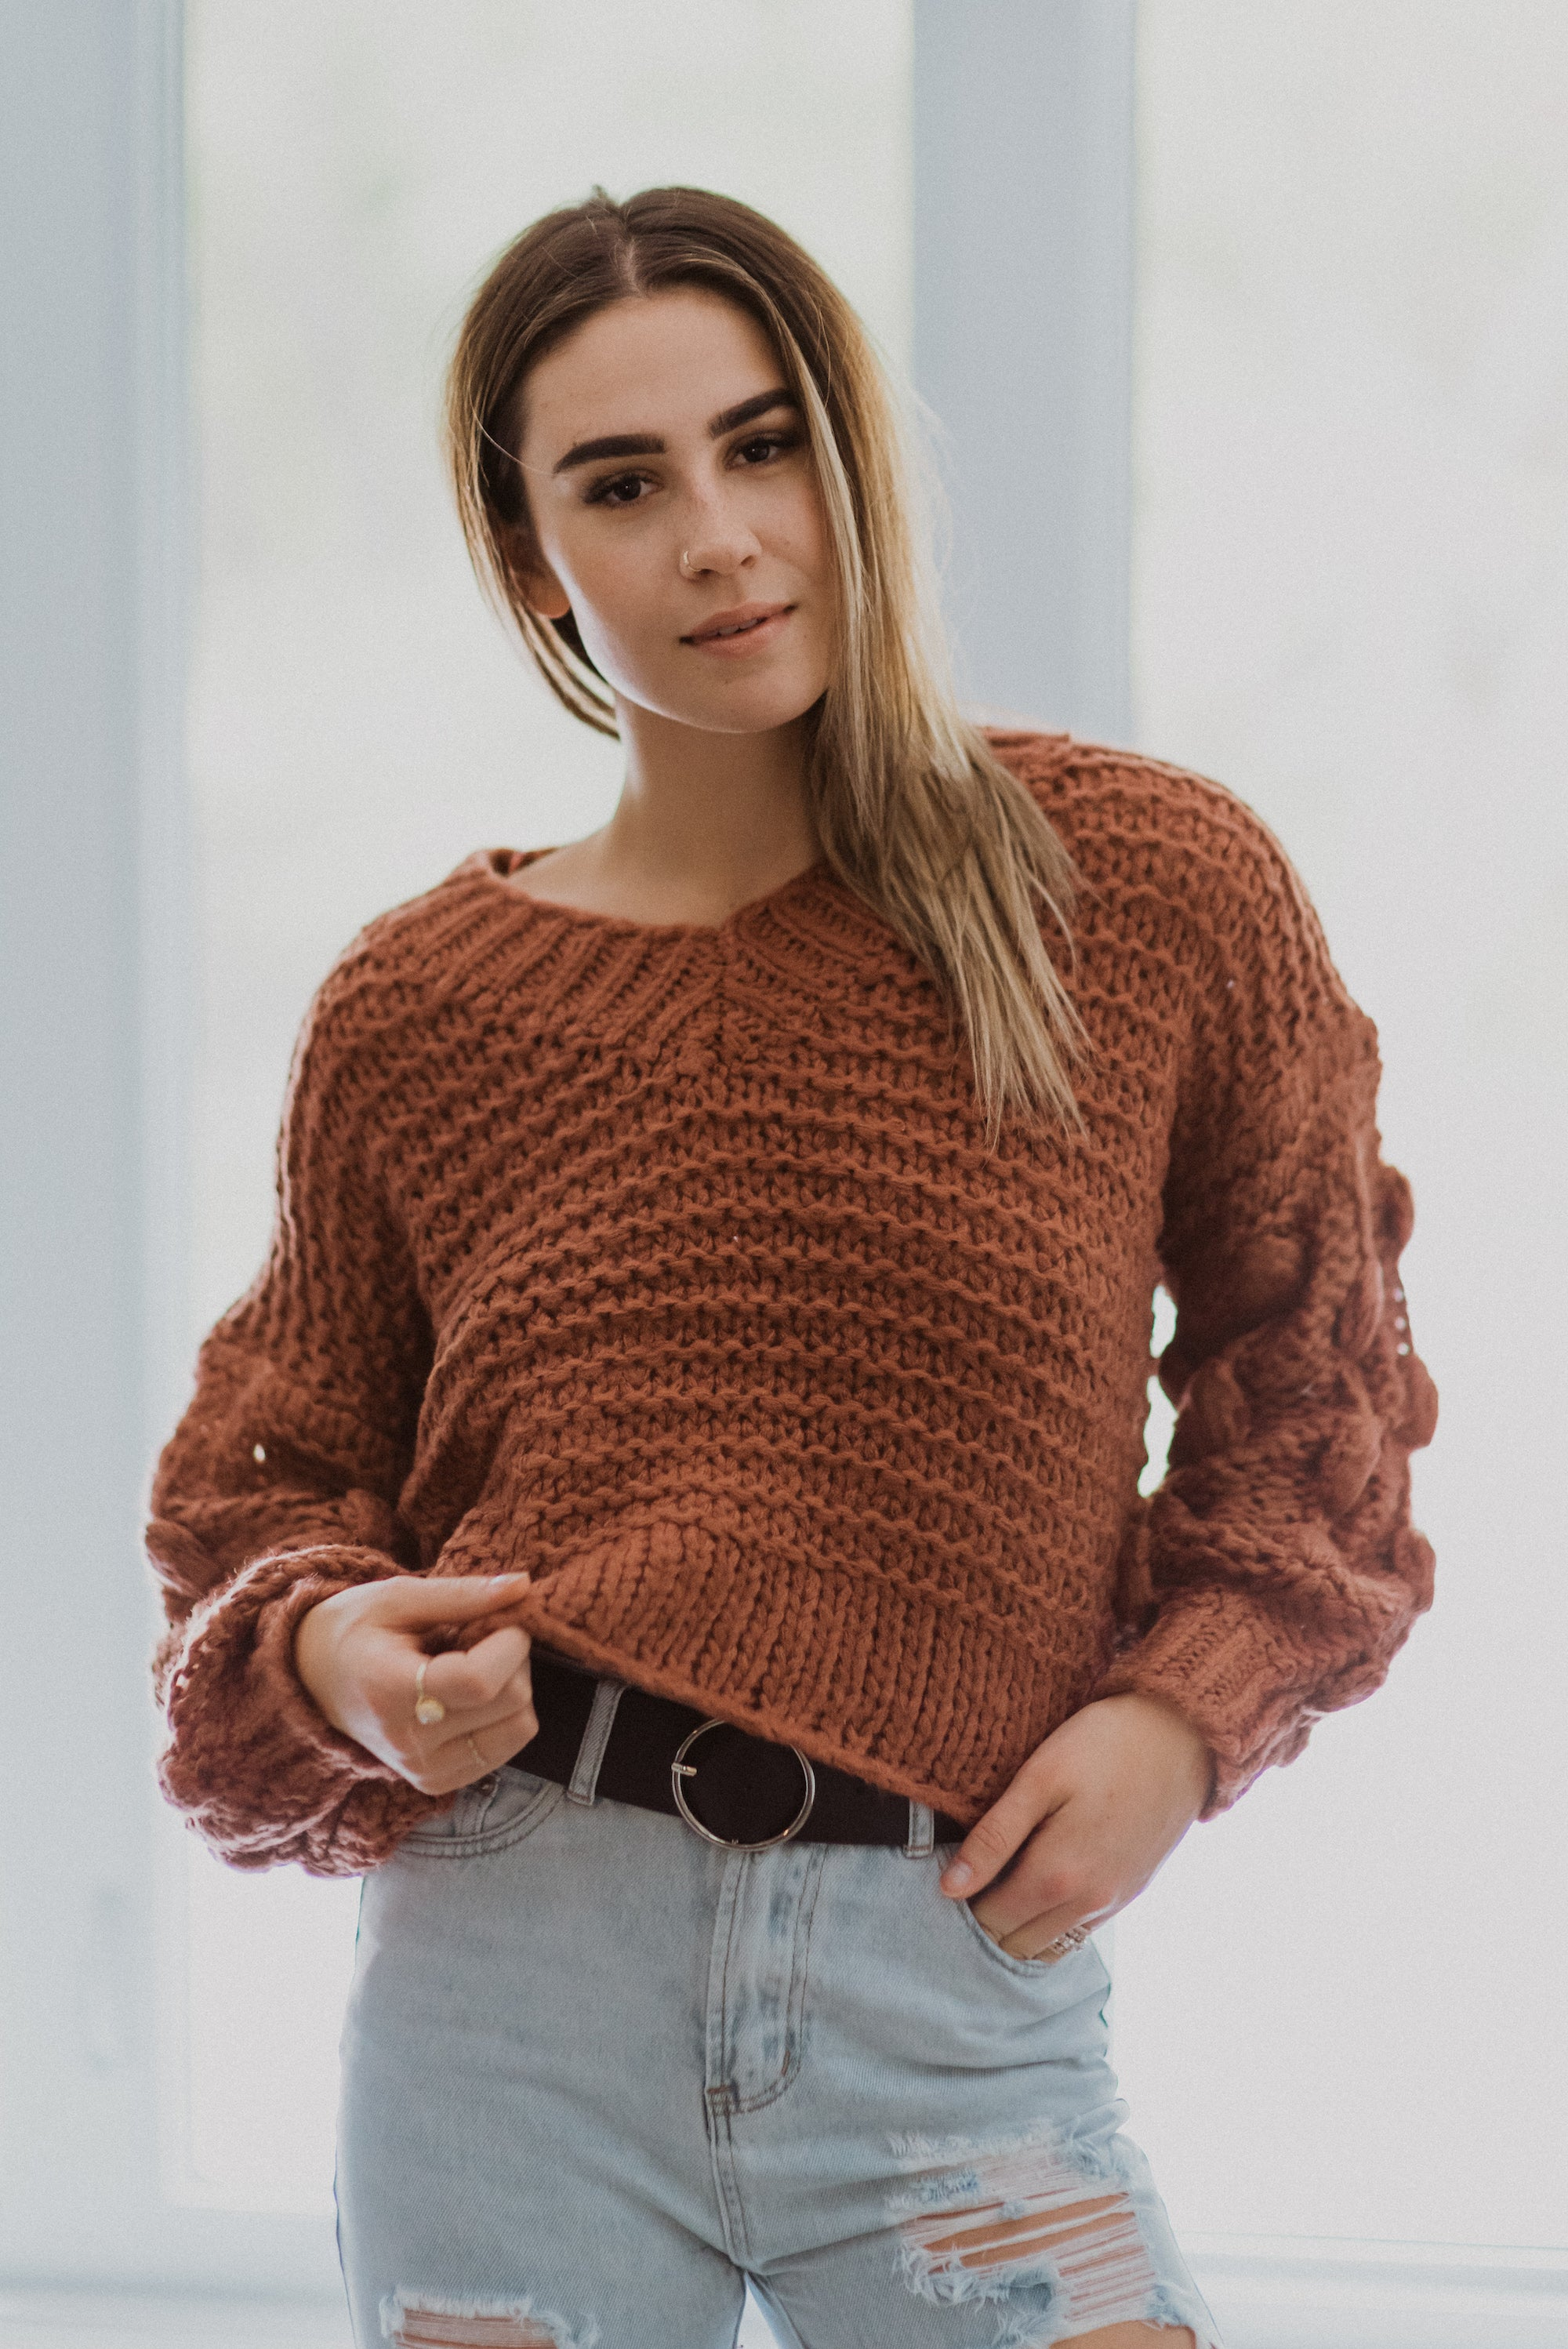 xSOLD OUTx Popular Demand Chunky Knit Pom Pom V-Neck Sweater in Brick